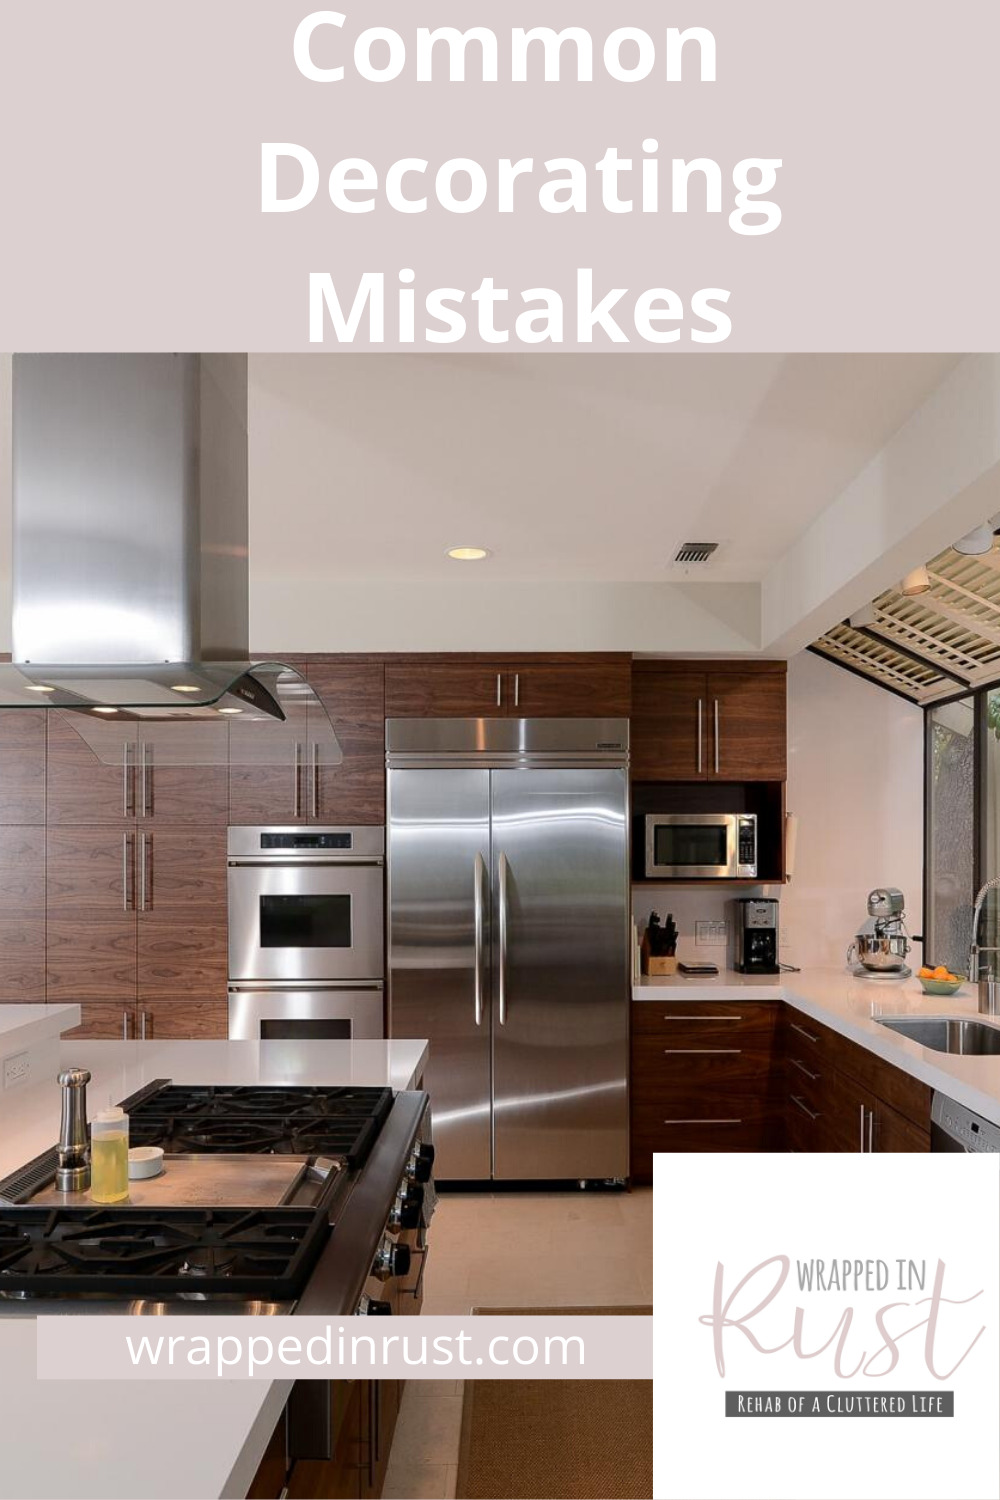 Most of us are not interior decorators so we could all use a few pointers when it comes to our home decor decisions. There are many common decorating mistakes that make your house feel messy. Learn how to avoid a few of them by simply reading this post. #interiordesigntips #decoratingmistakes #howtoavoidcommondecoratingmistakes #wrappedinrustblog